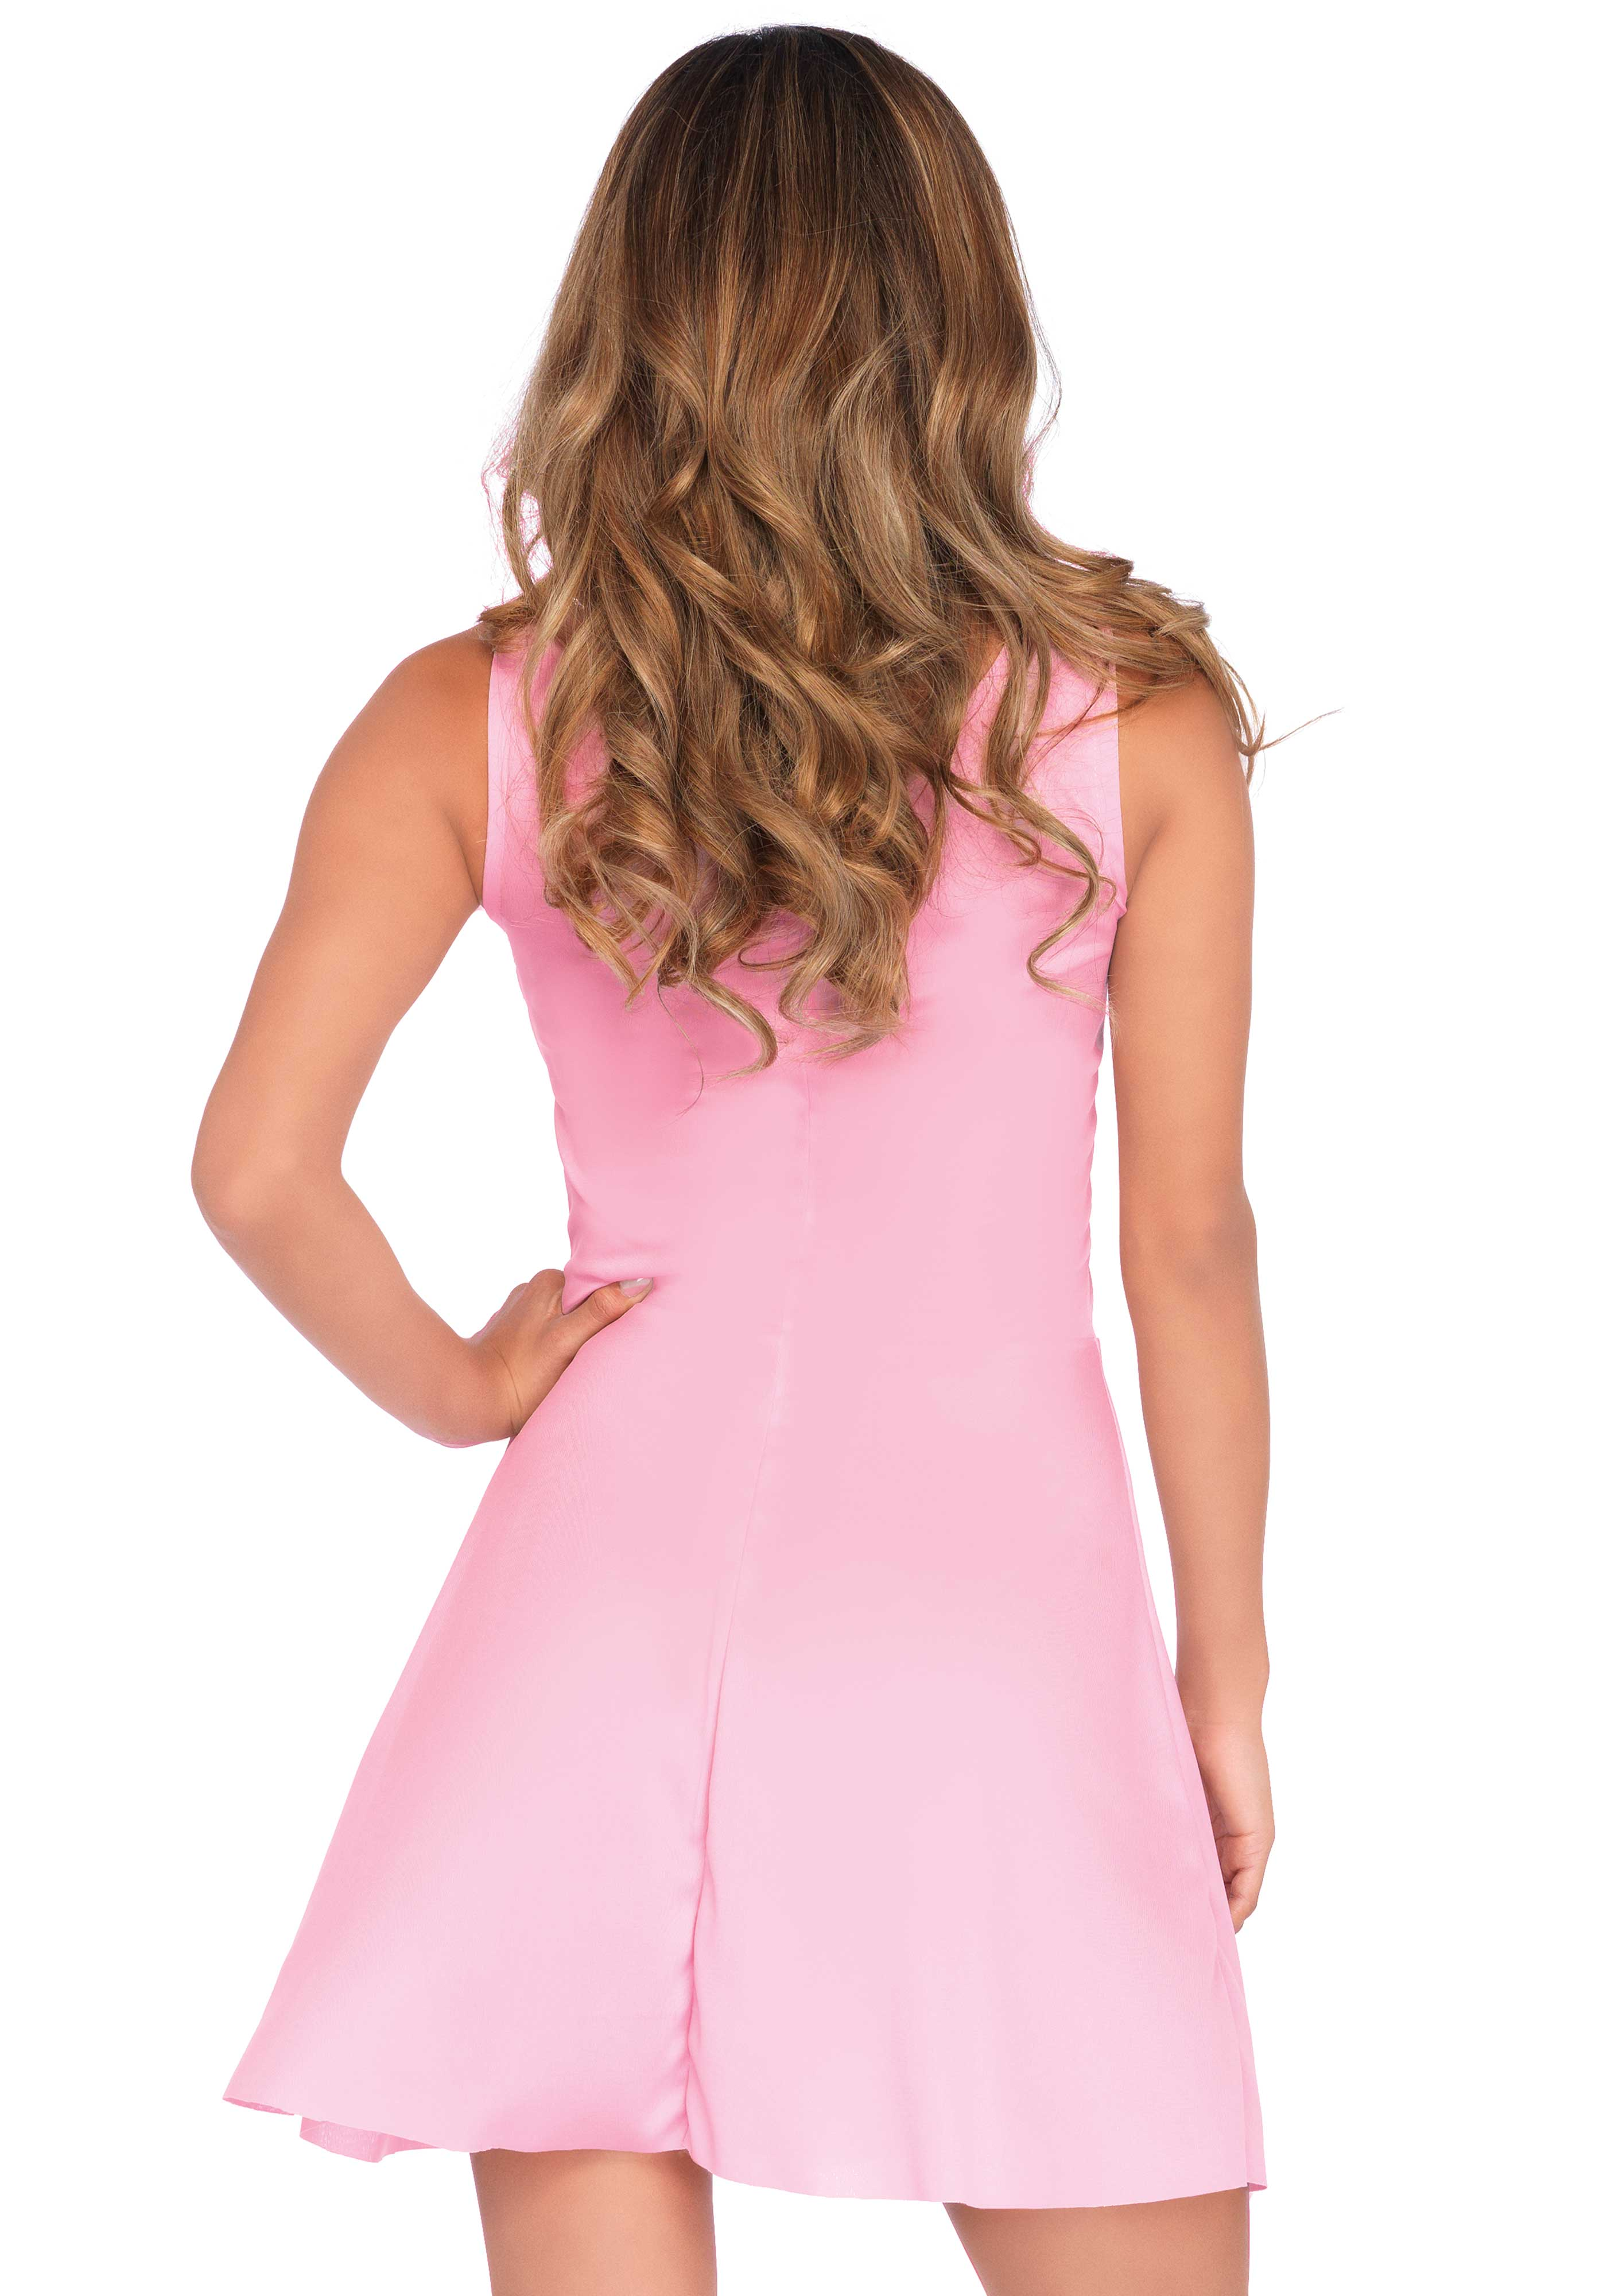 Skater dress, easy to wear stretch fabric. this figure-flattering mini dress is the perfect foundation to any casual or party outfit.